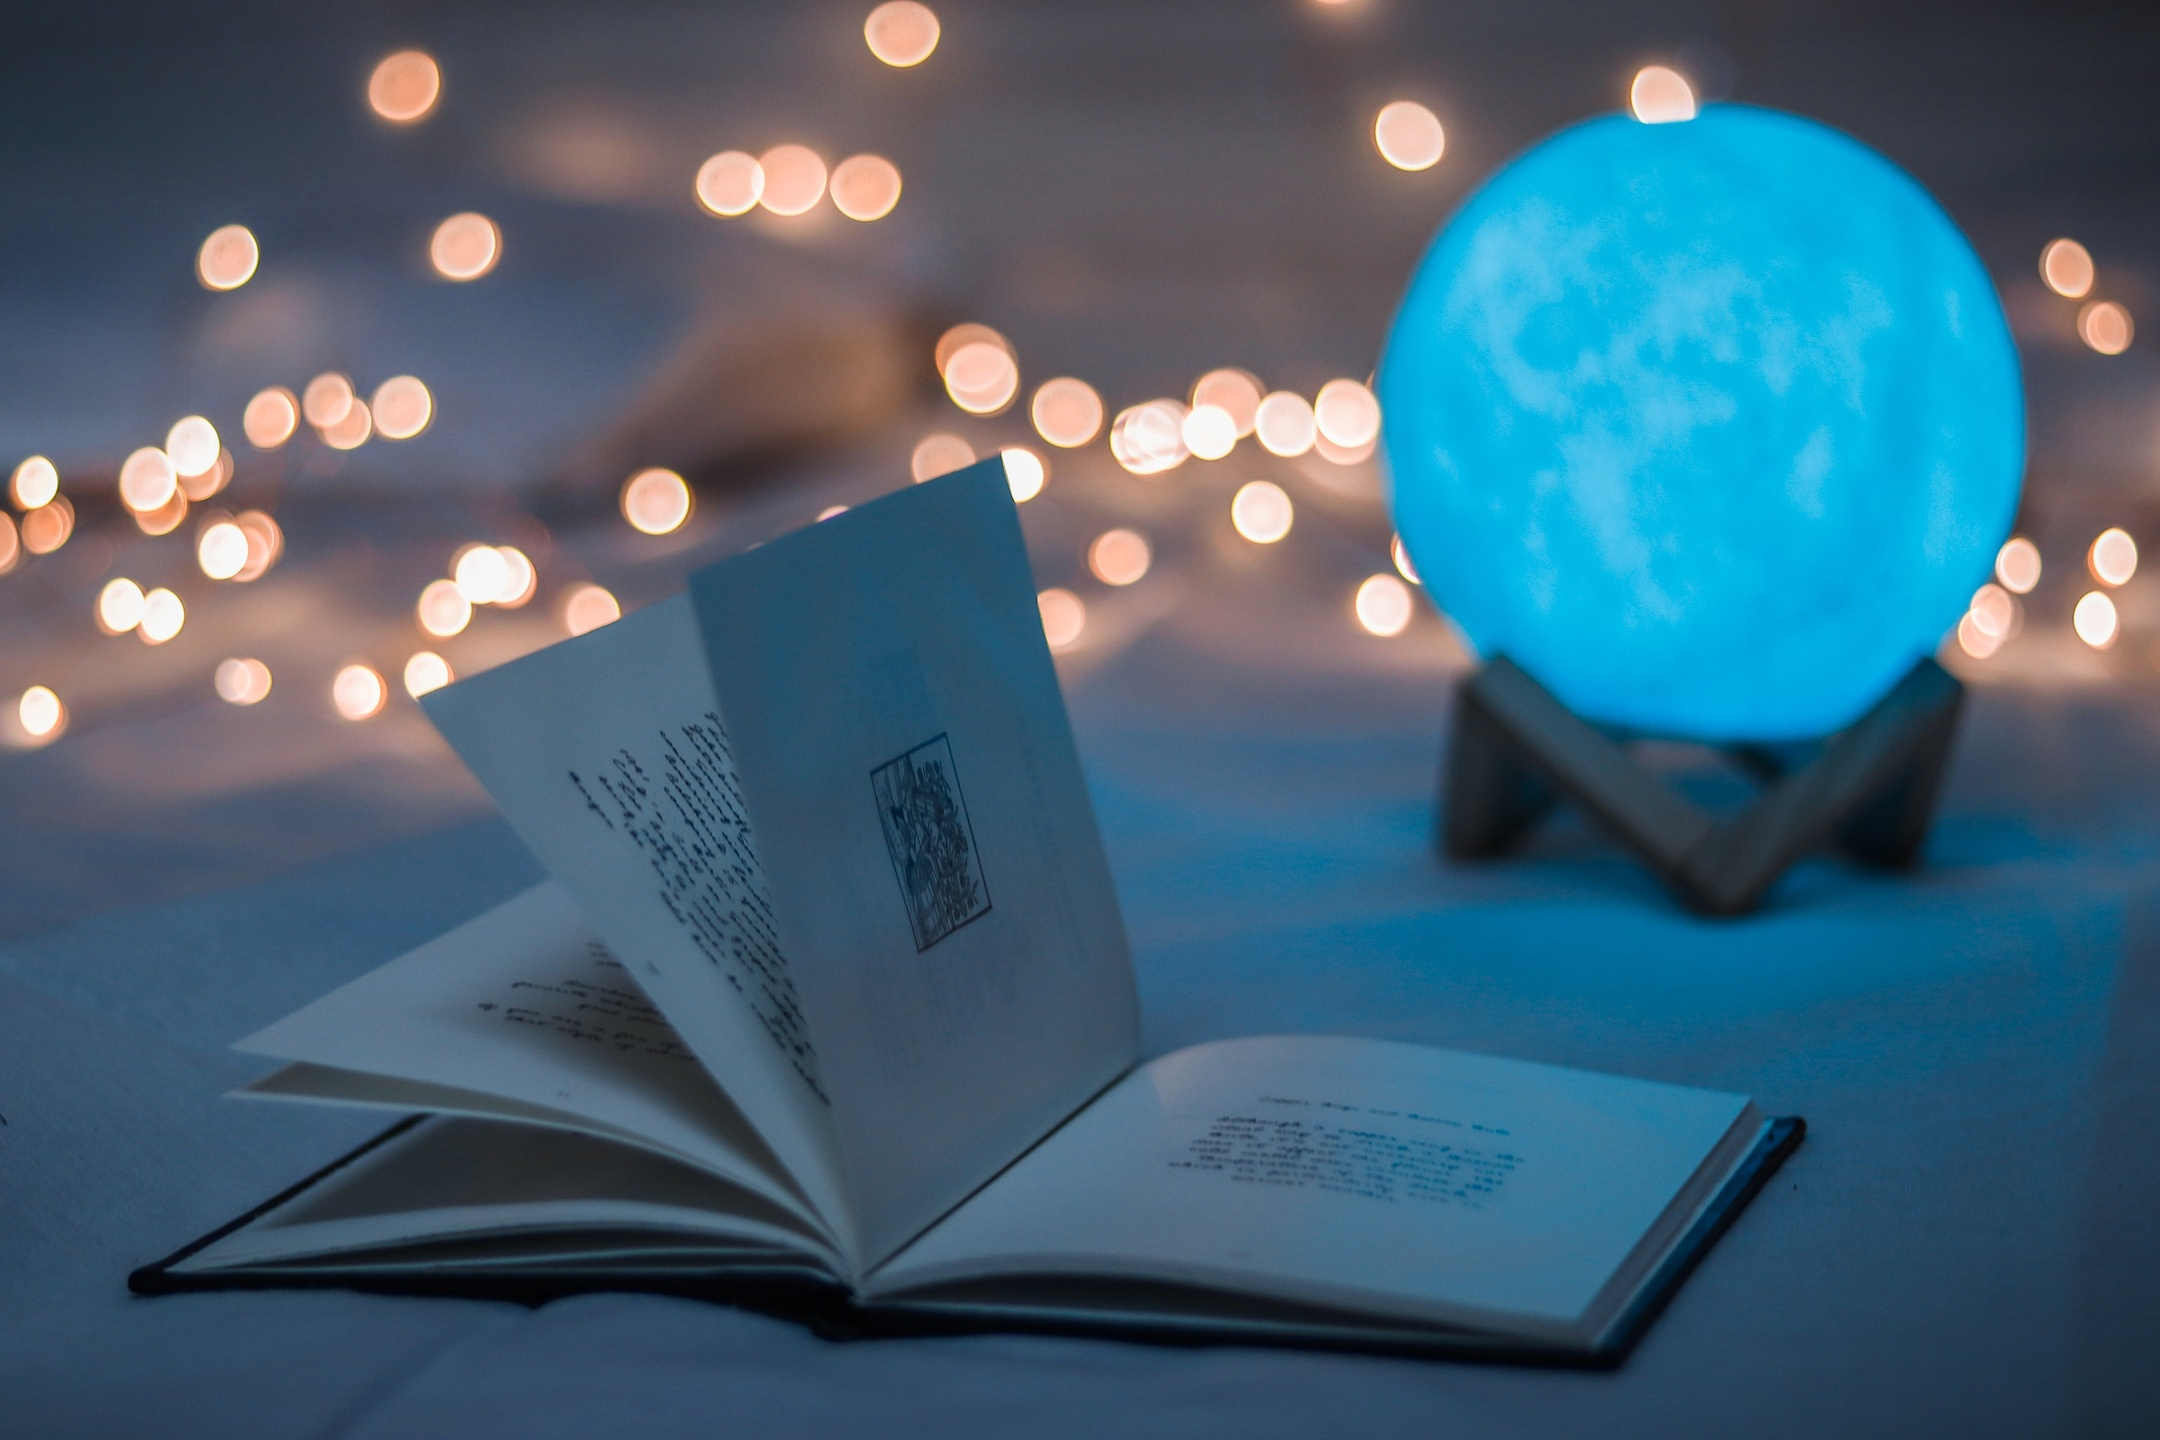 image shows oracle book and illuminated crystal ball